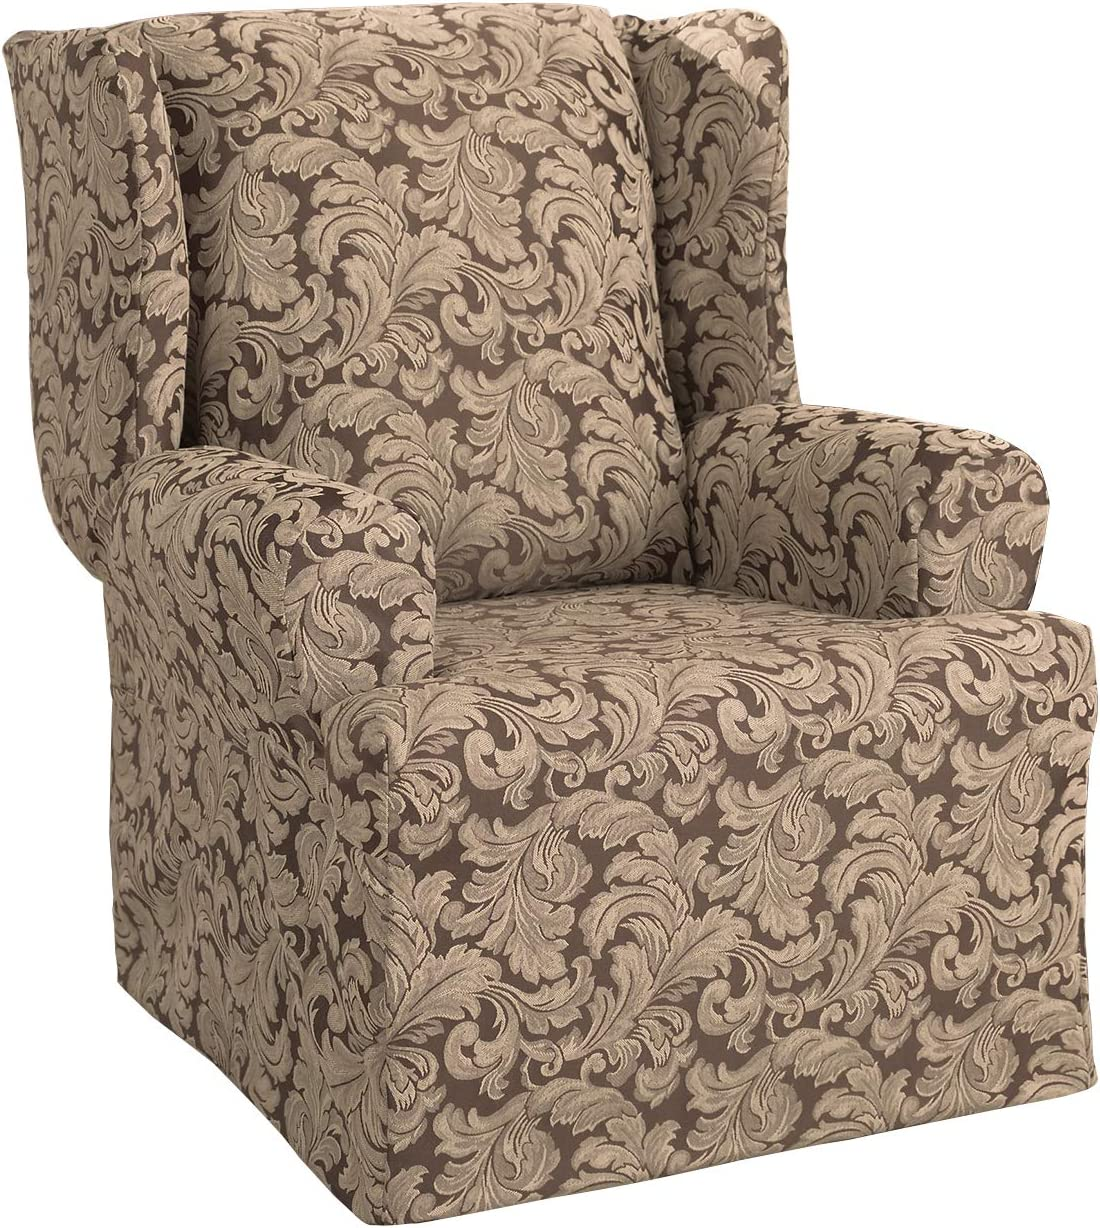 Surefit Scroll Damask Box Cushion Wing Chair One Piece Slipcover, Relaxed Fit, Cotton/Polyester, Machine Washable, Brown